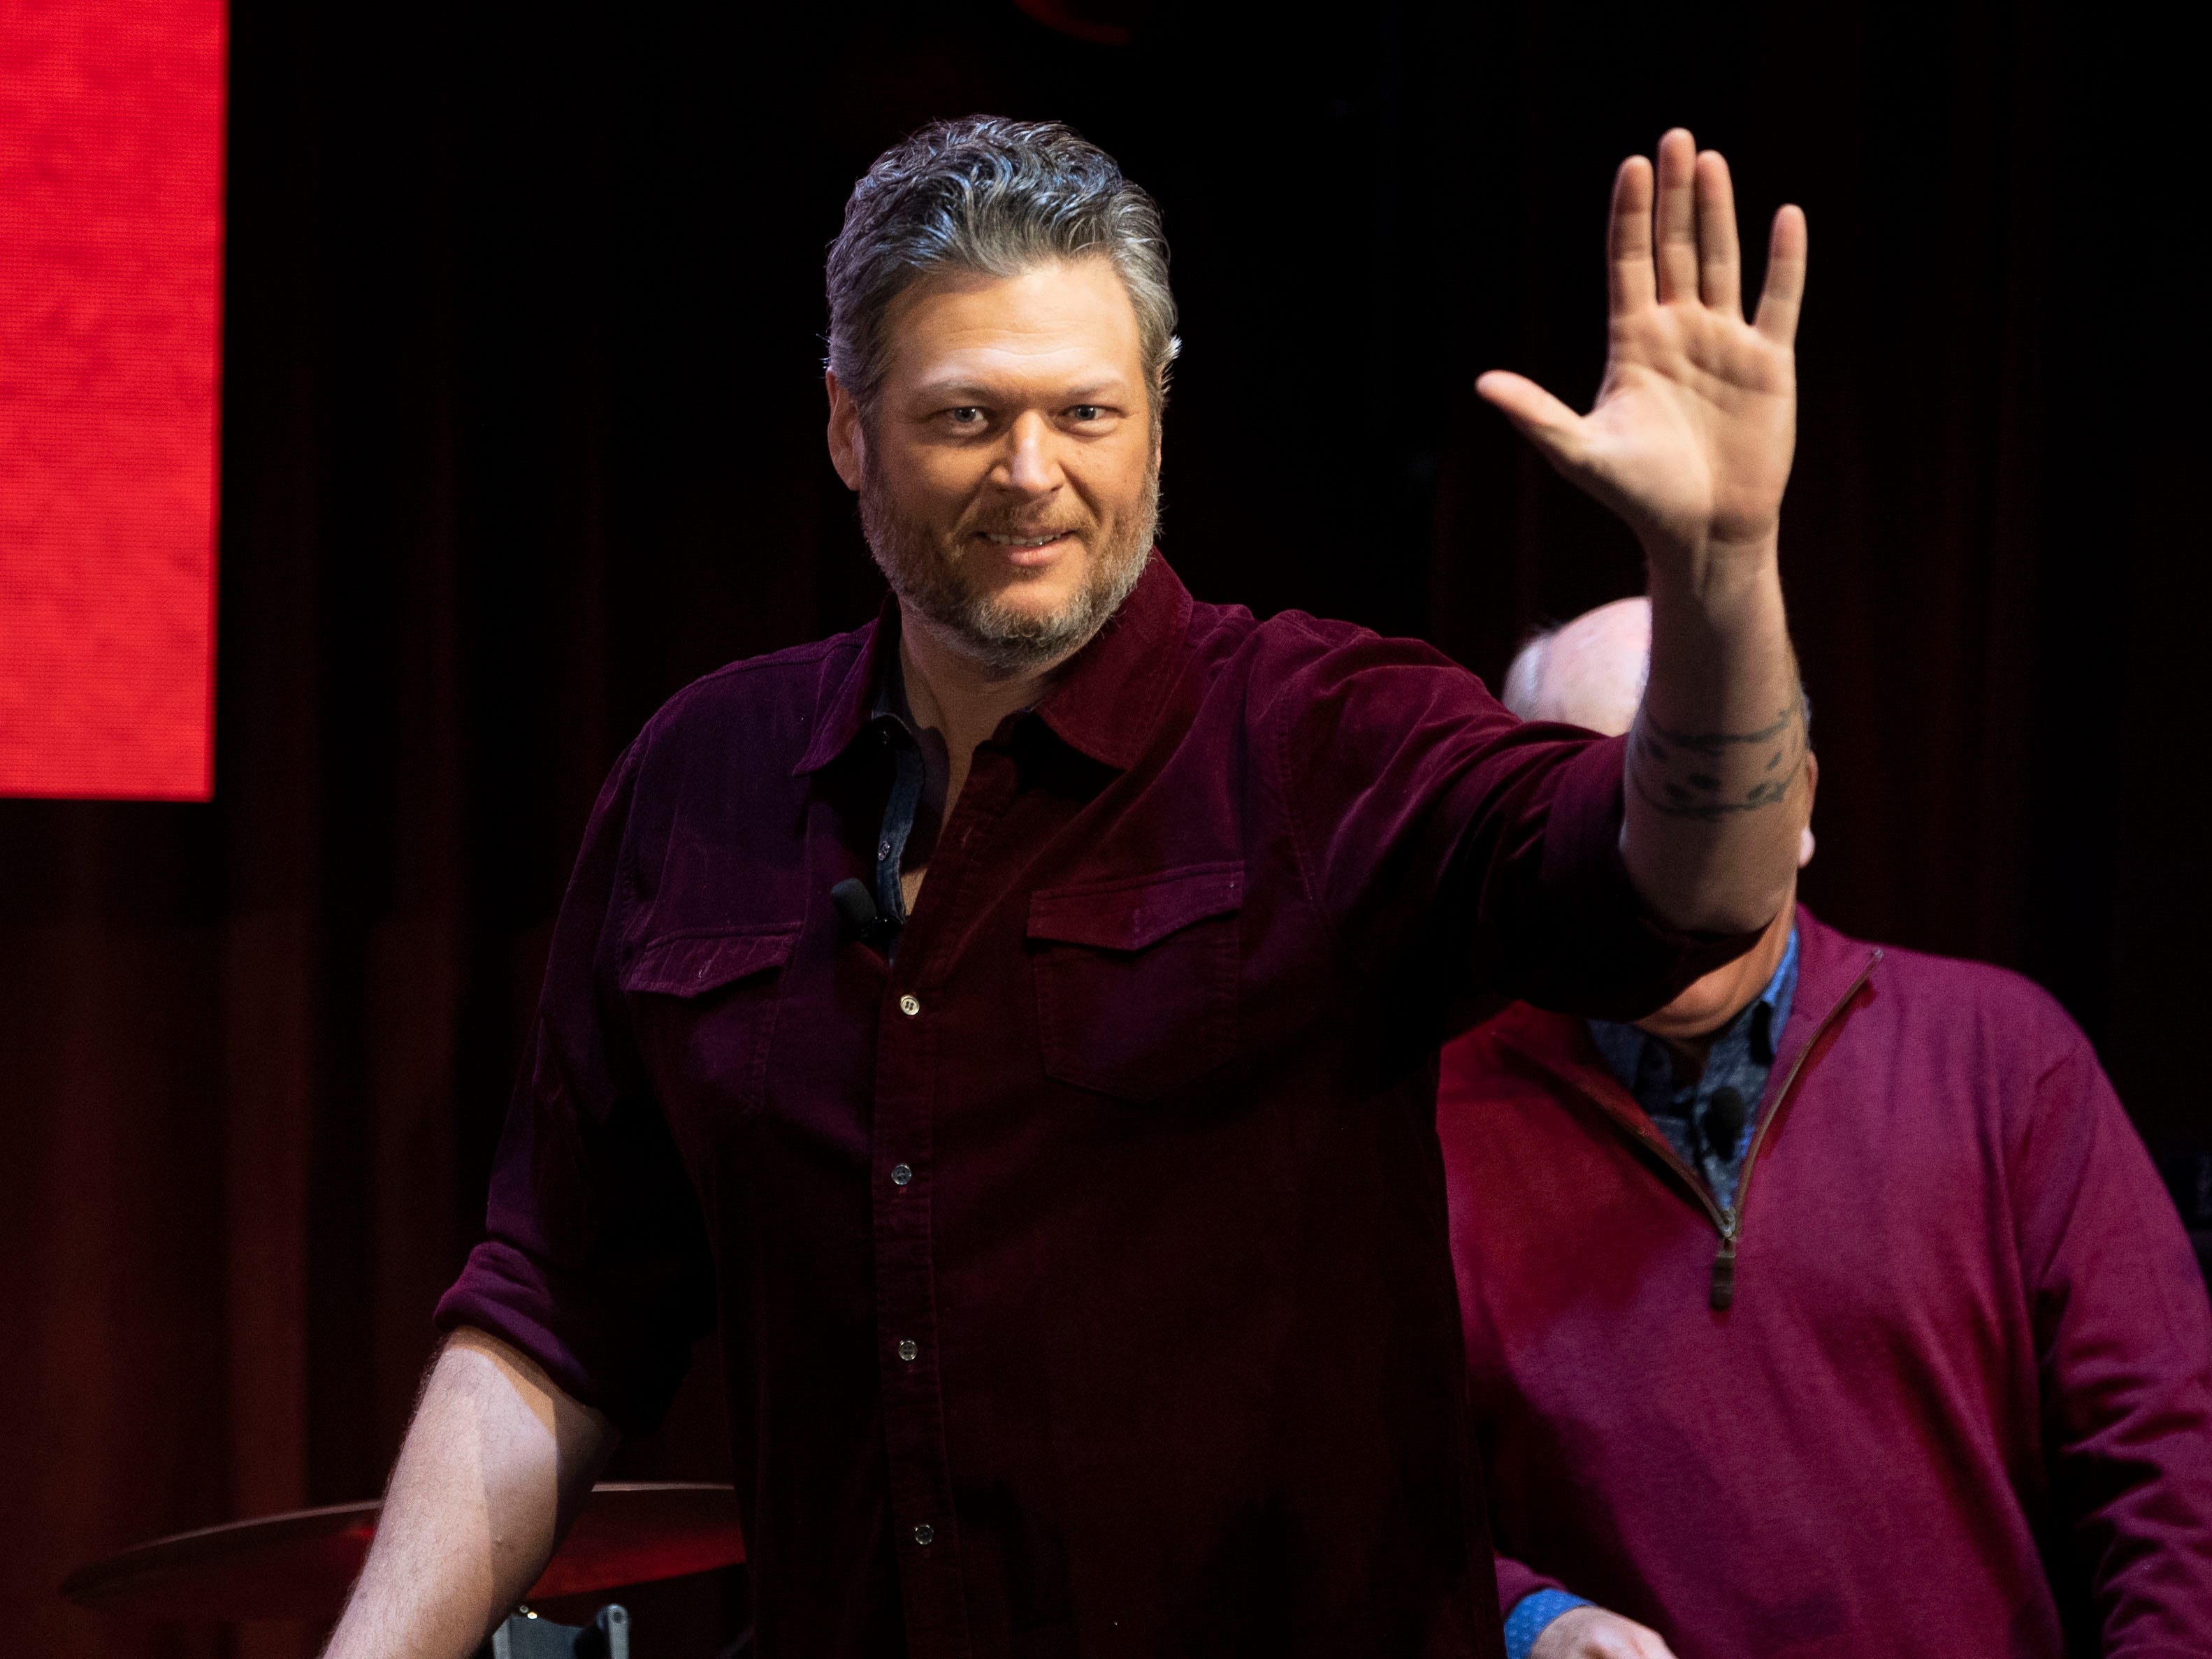 Blake Shelton waves to the small crowd gathered for a news conference for the grand opening Ole Red Gatlinburg on Wednesday, March 13, 2019.